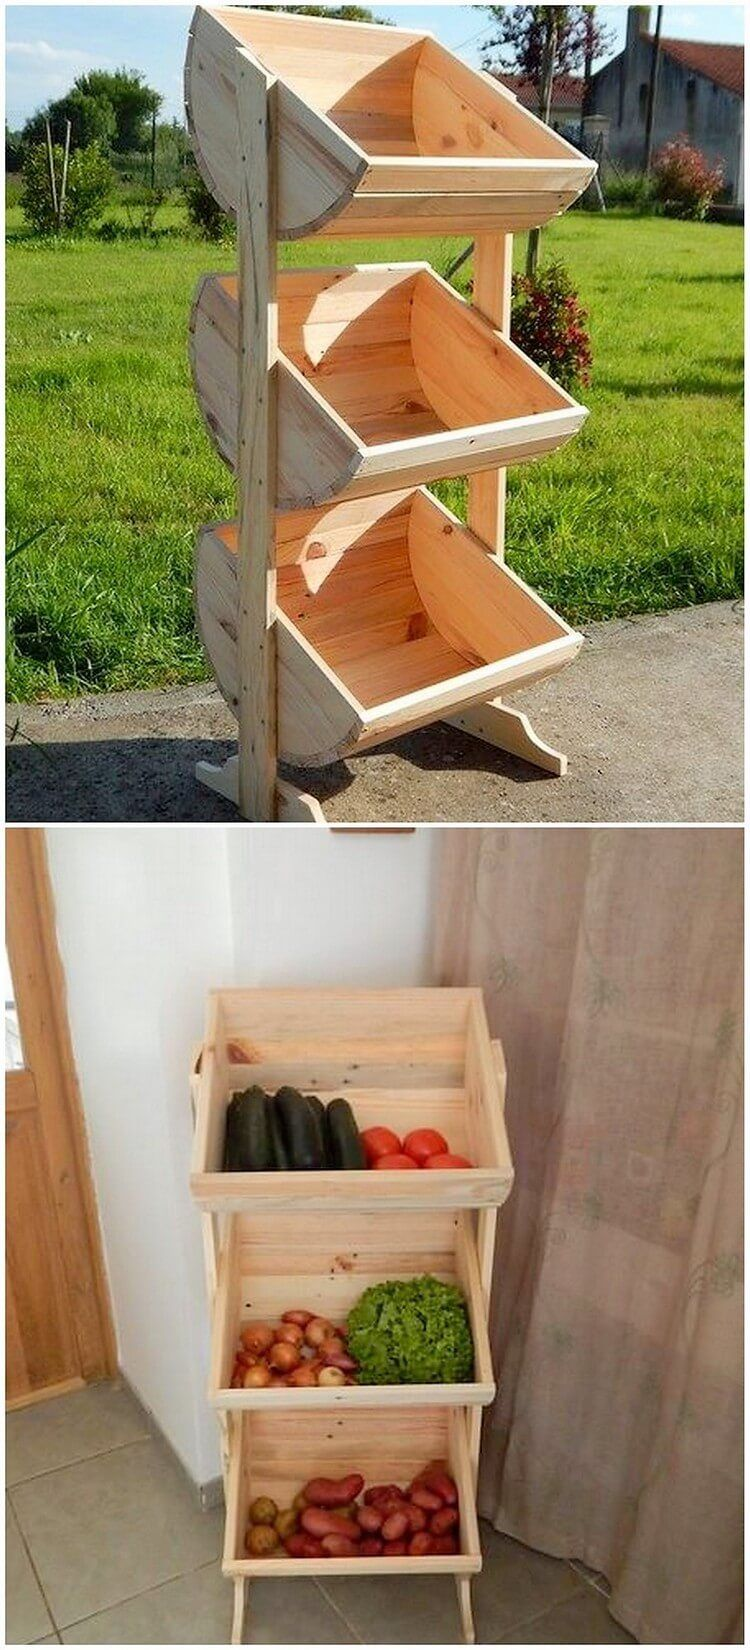 Incroyable This Is Another Creatively Designed Wood Pallet Project That Is Featuring  With The Vegetable Rack Piece Structure For You. This Project Would Stand  Out To ...